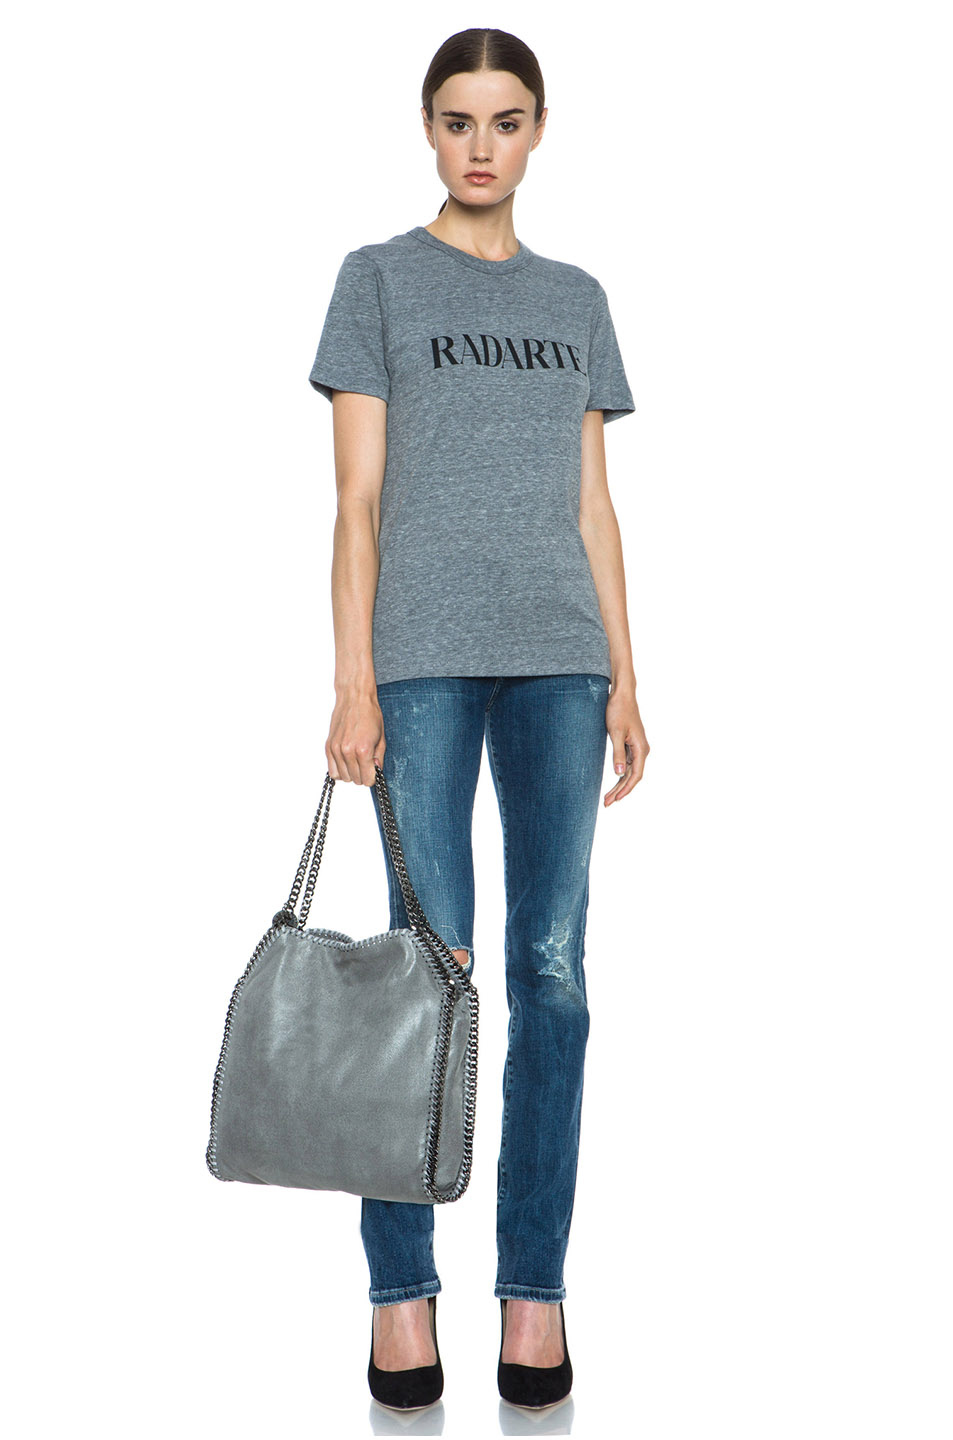 Rodarte|Radarte Shirt in Heather Grey